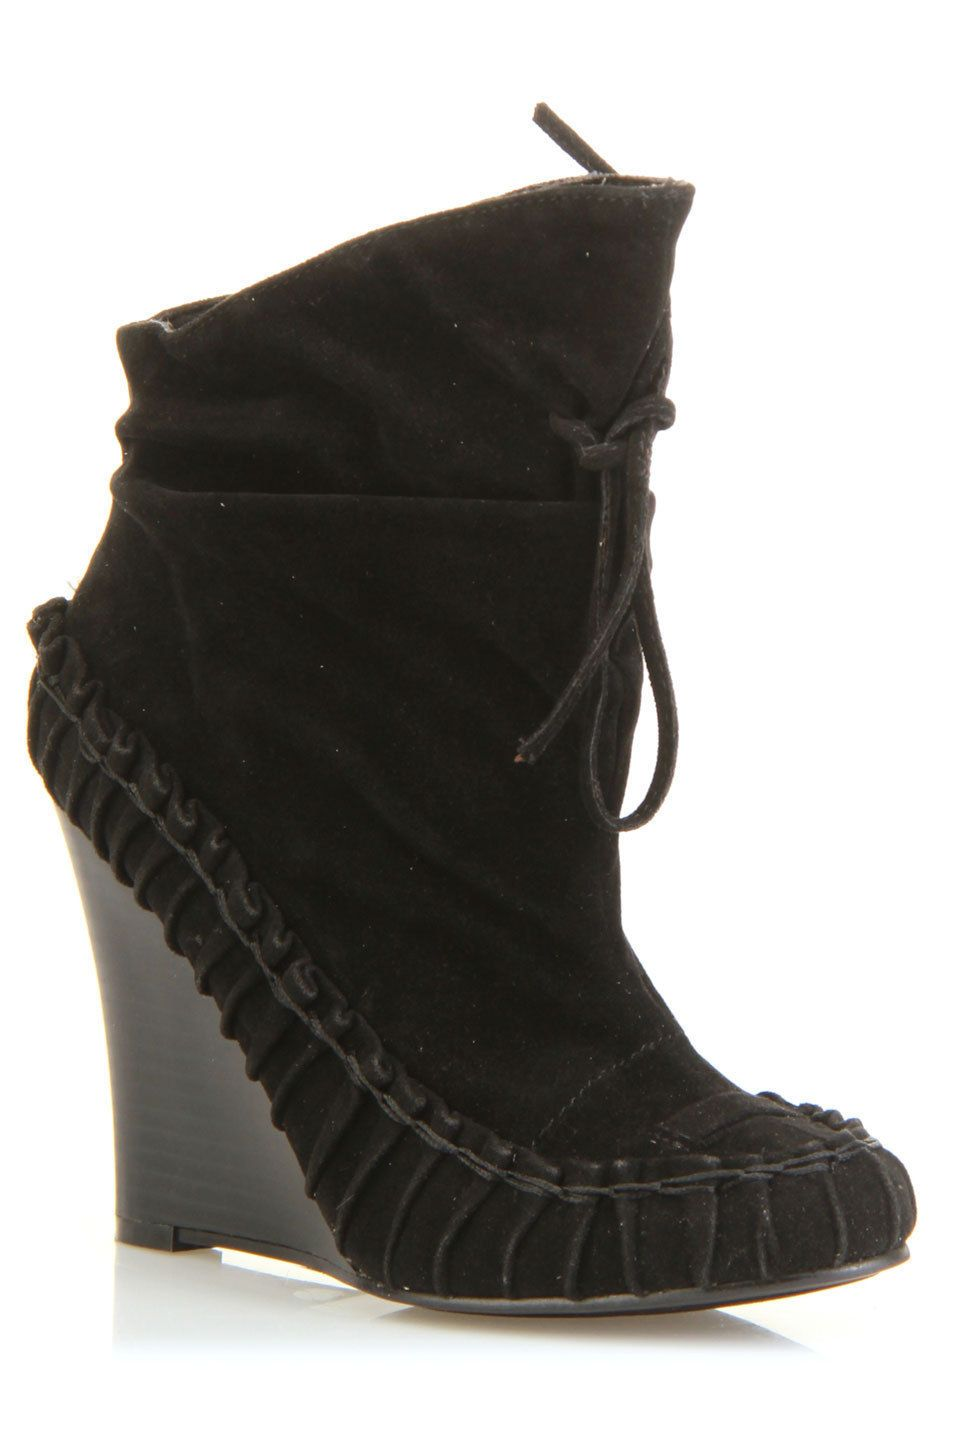 Wedge Booties In Black.